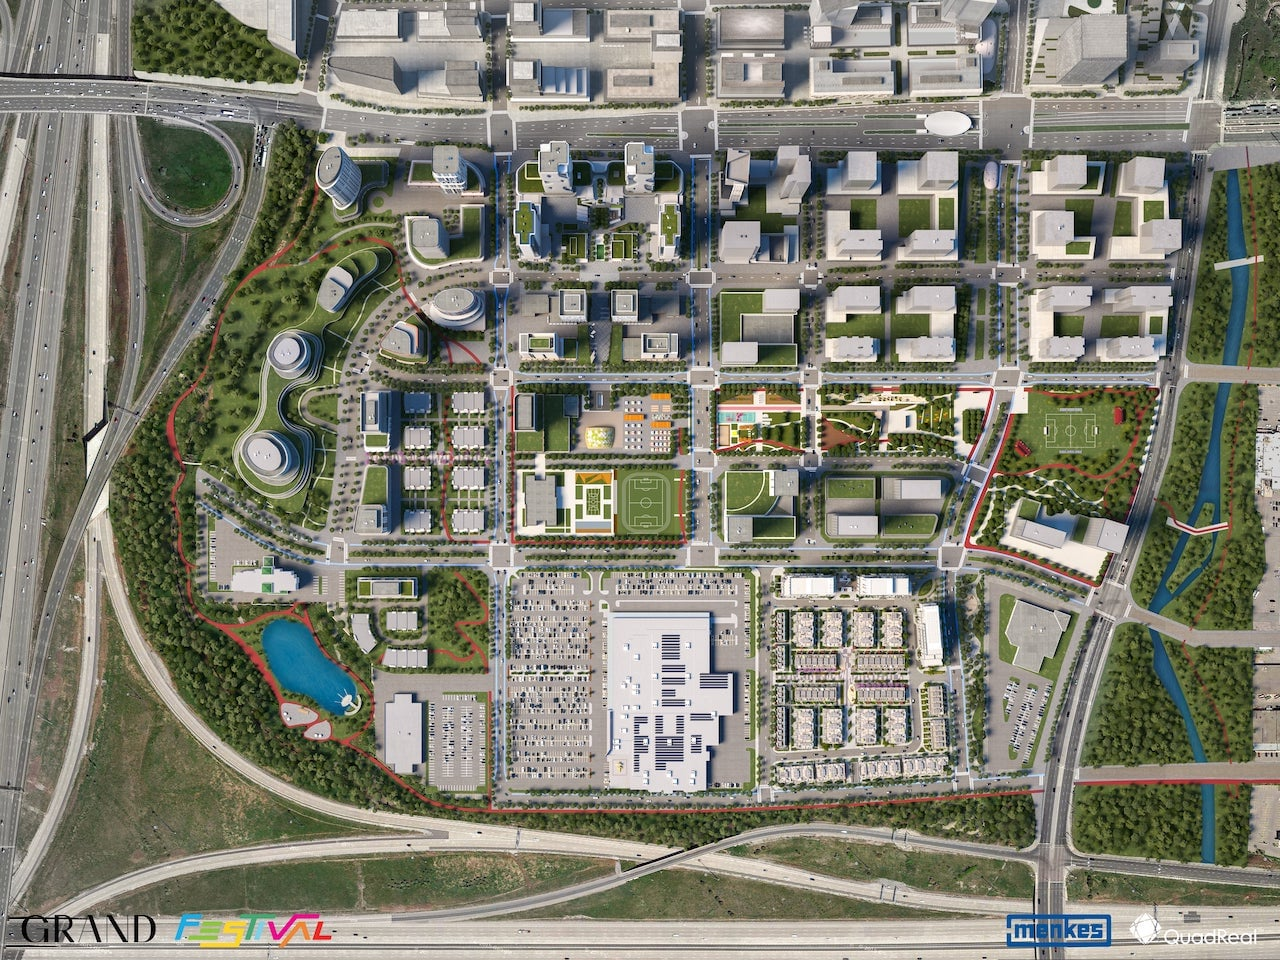 Site plan of Grand Festival Condos in Vaughan